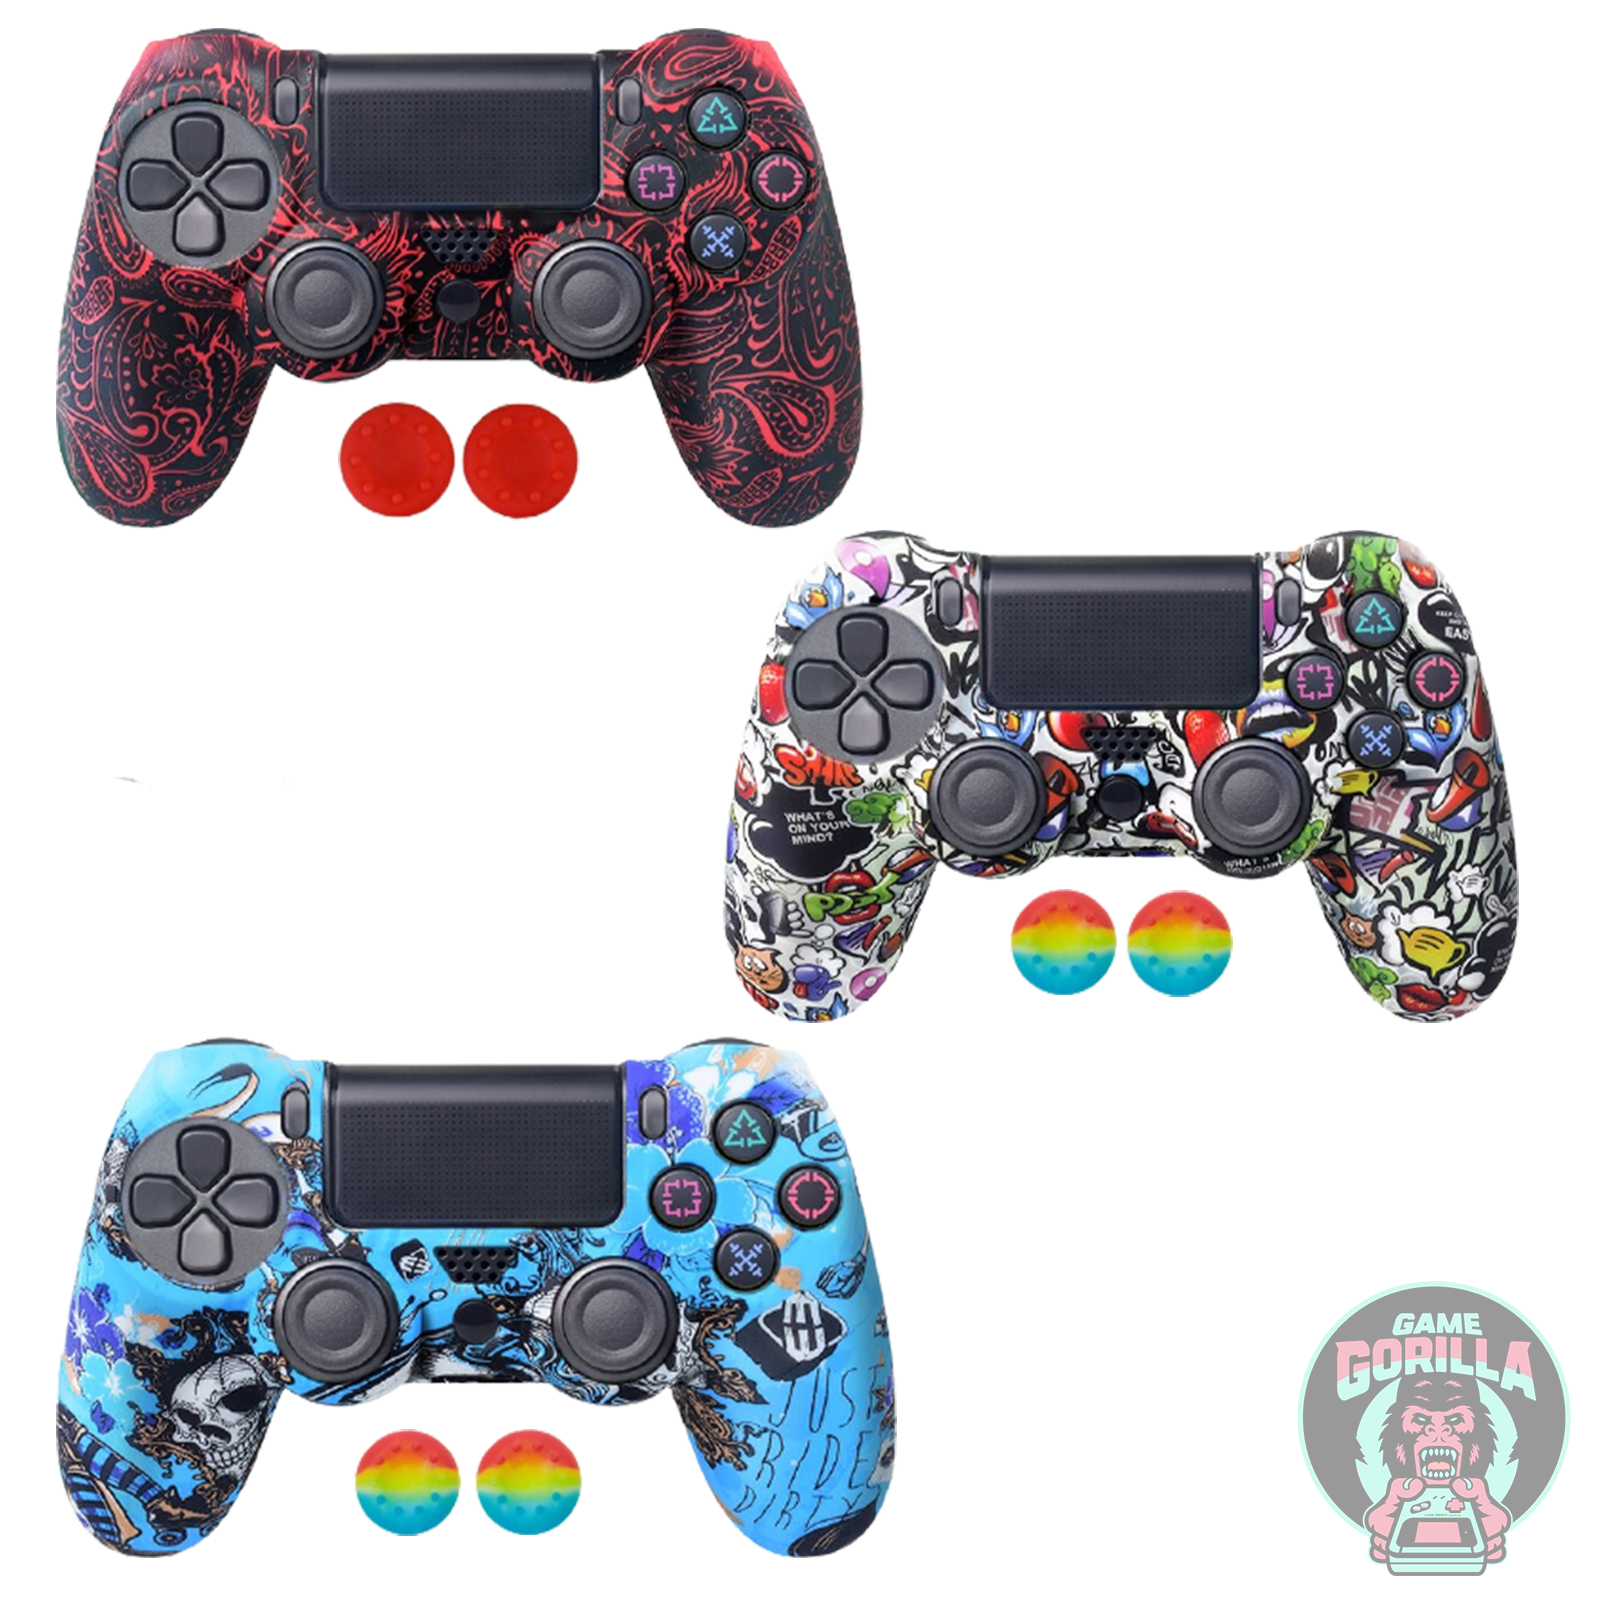 PS4 Silicone Skin Protective Controller Cover for PlayStation 4 / Slim / Pro